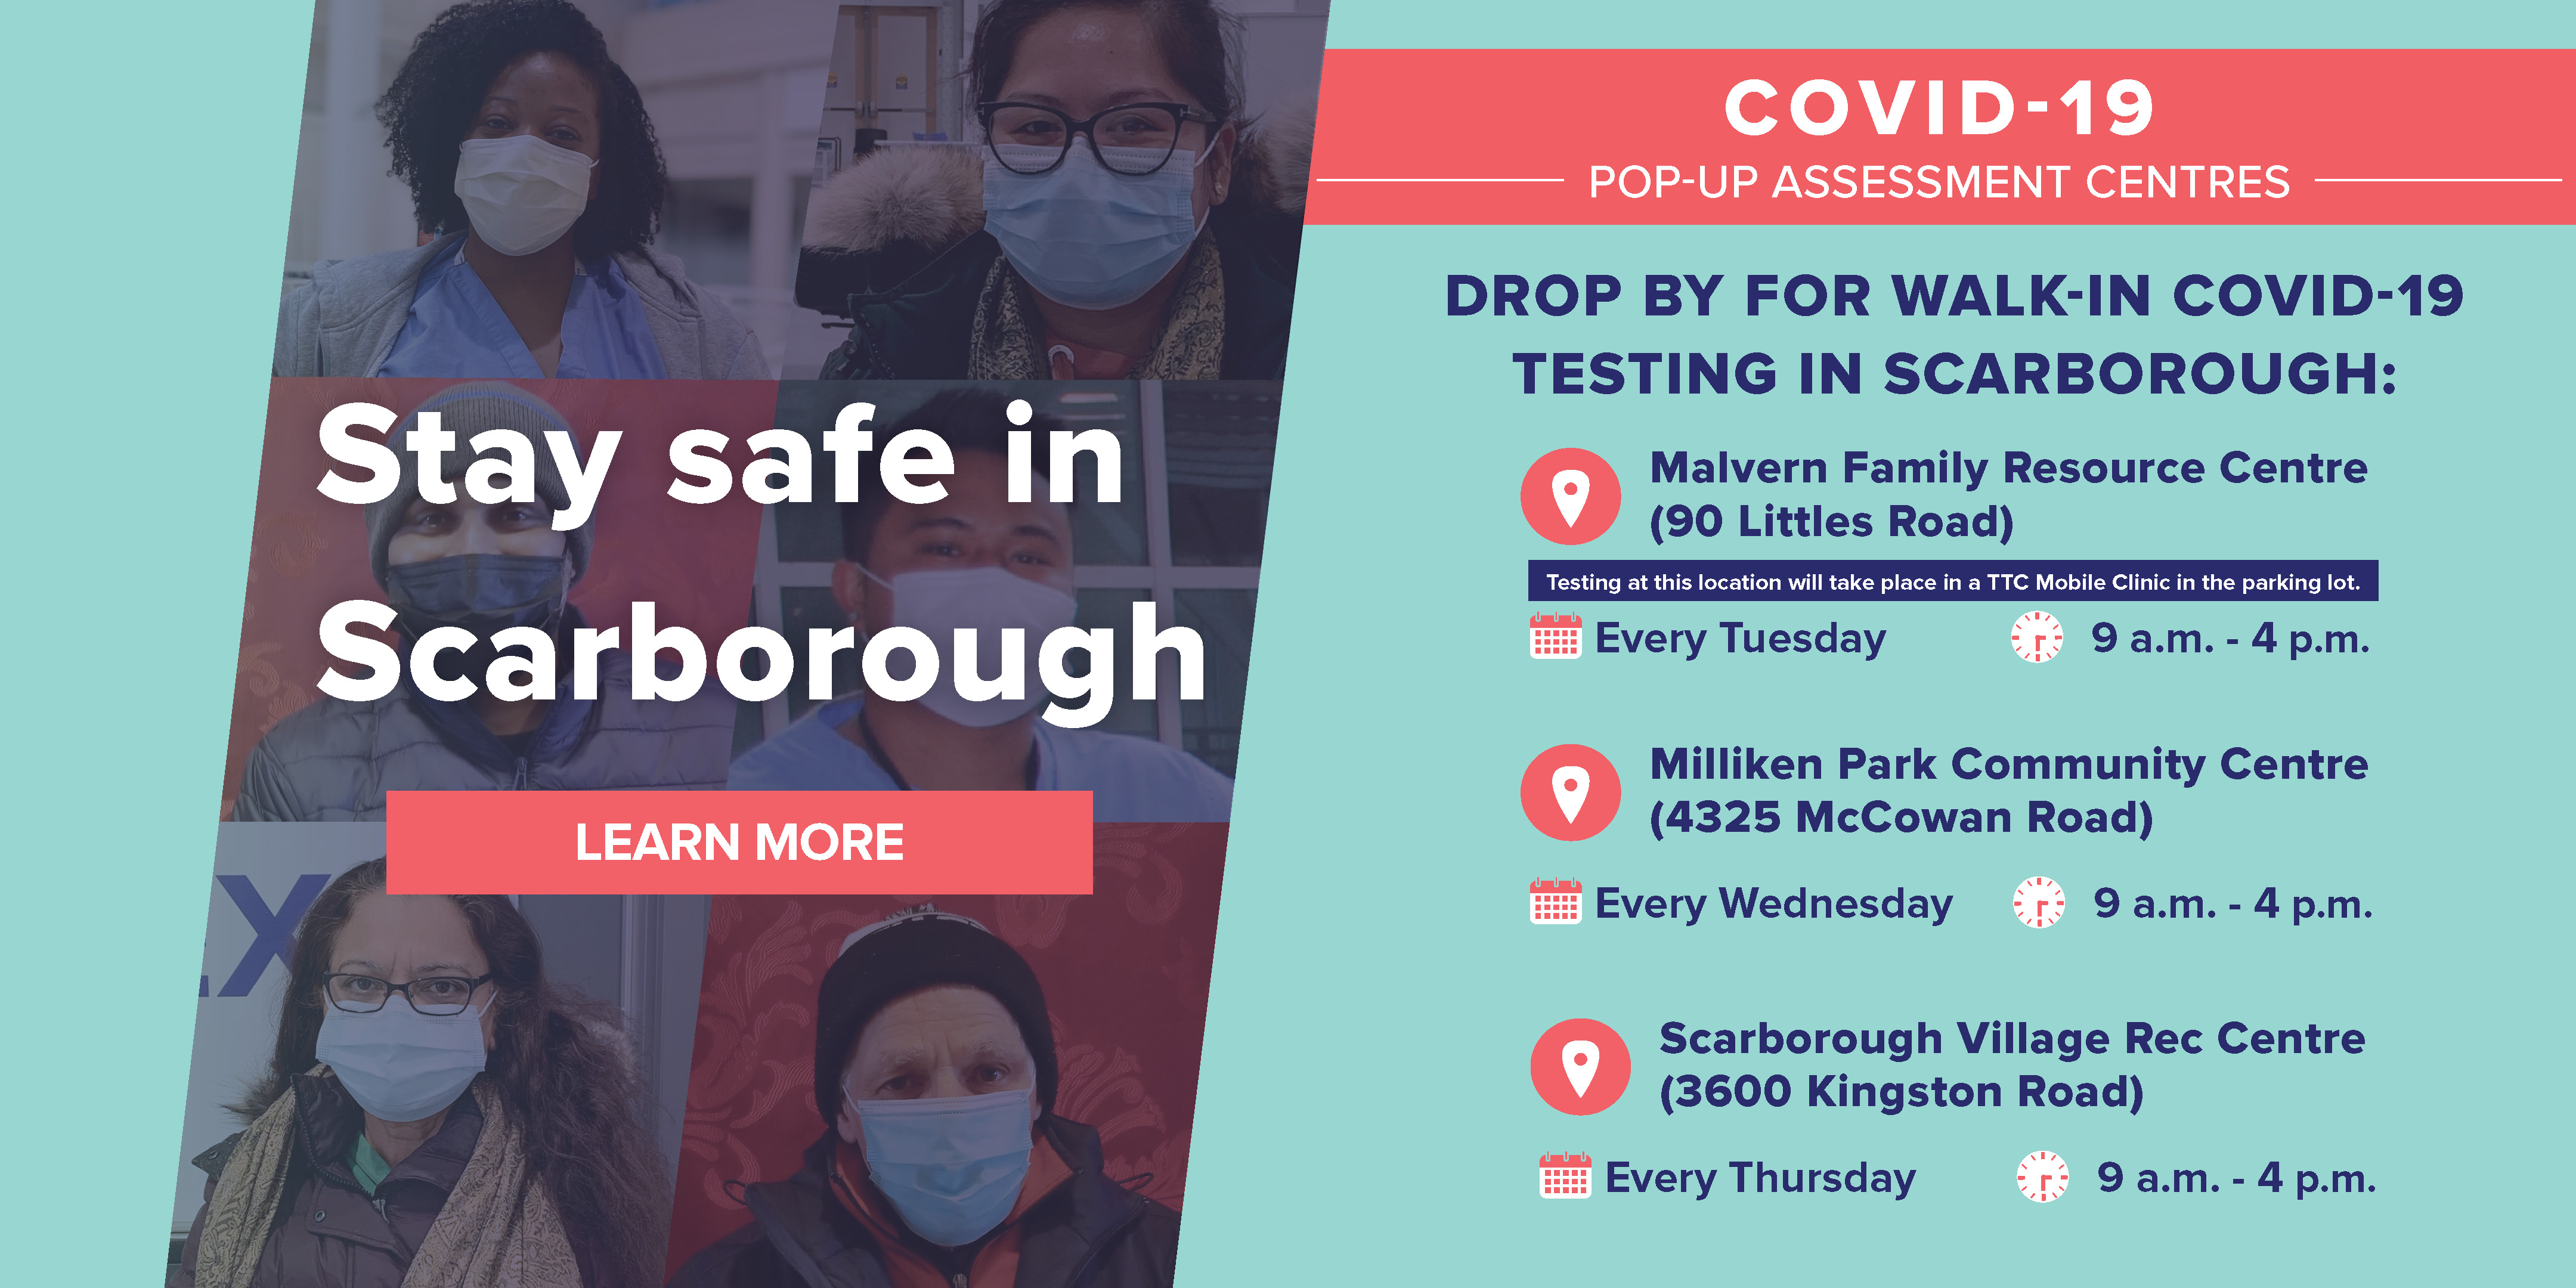 Walk-in COVID-19 testing locations in Scarborough